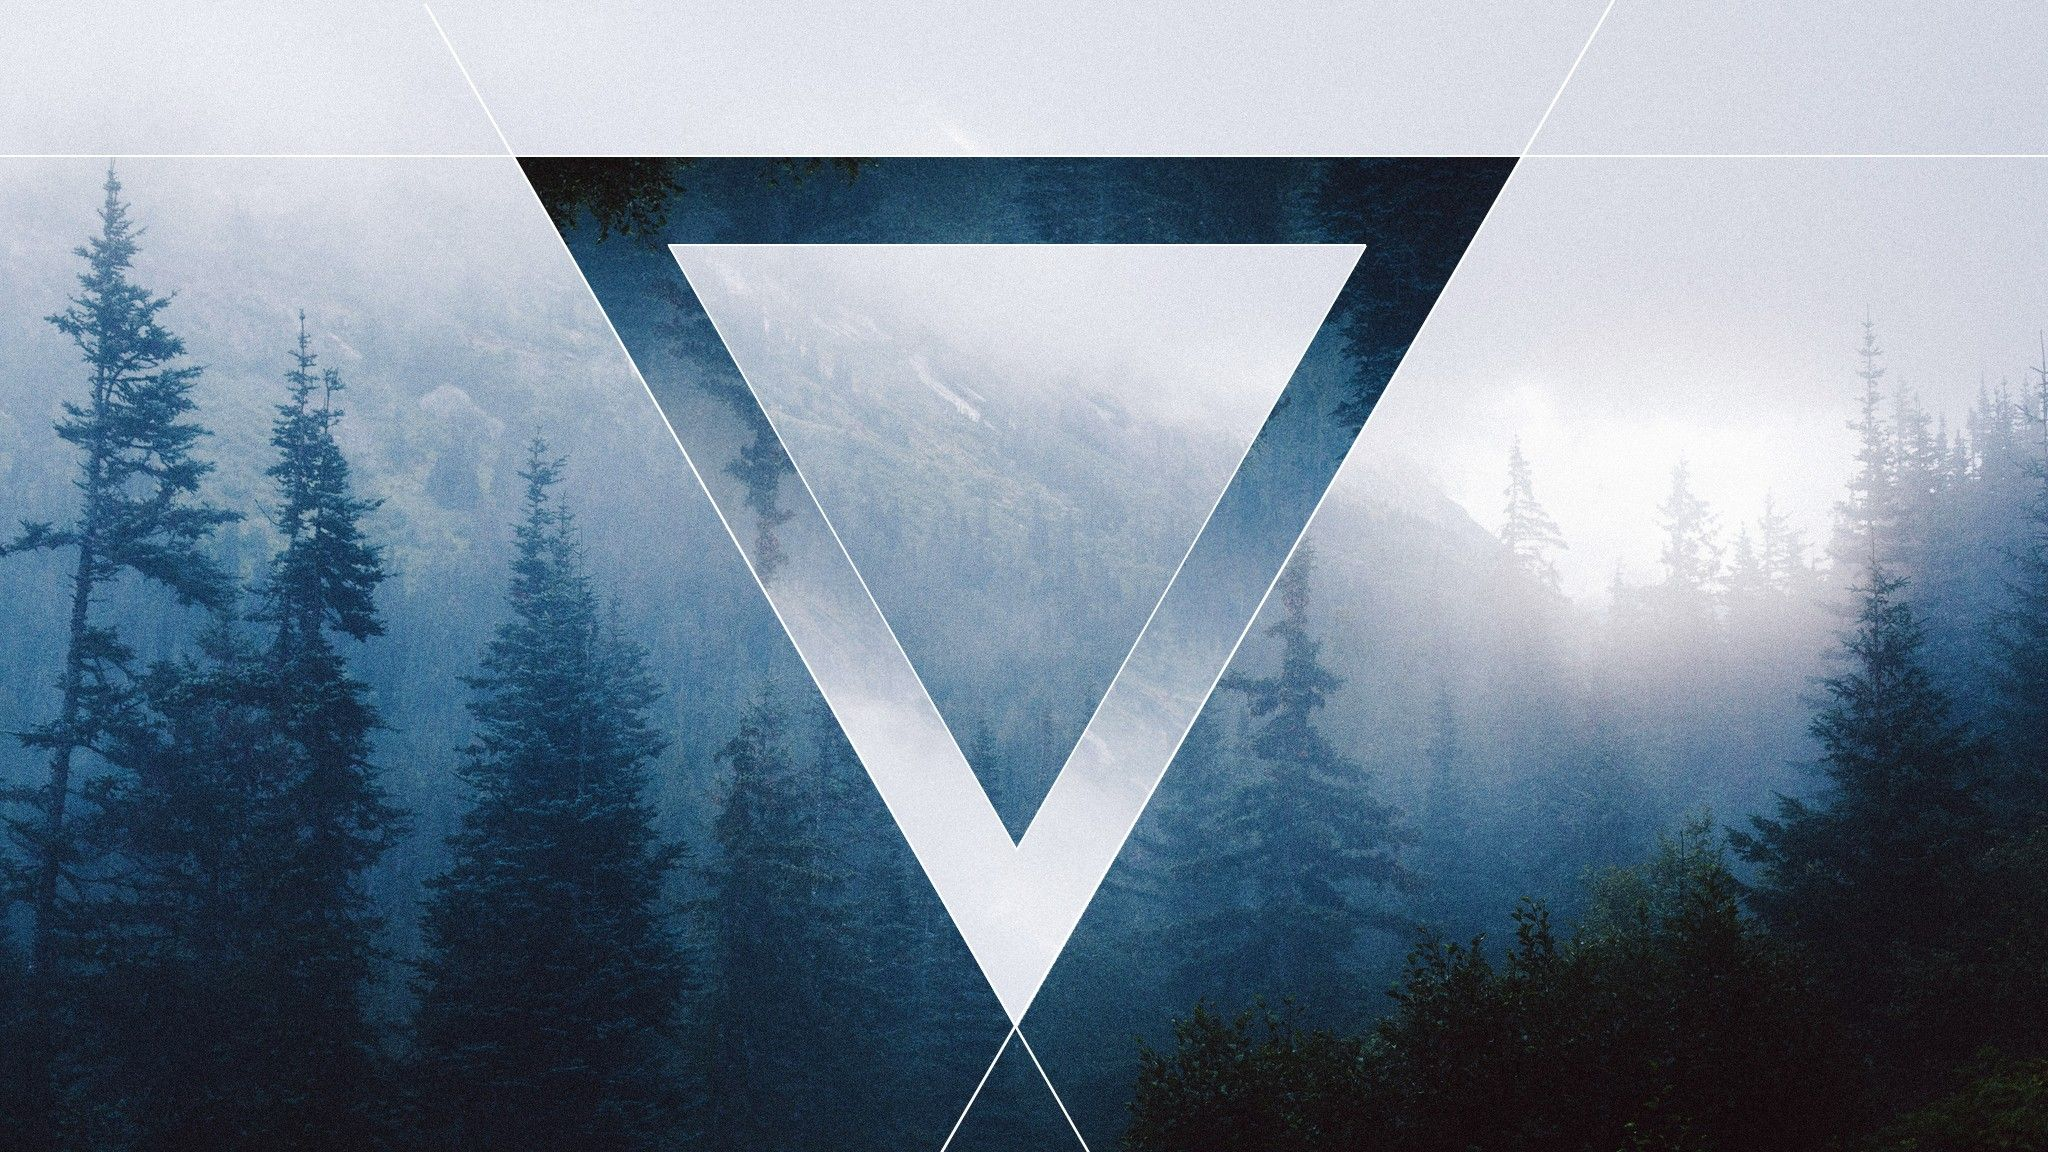 Triangle Forest Polyscape Wallpaper Geometric Laptop Wallpaper